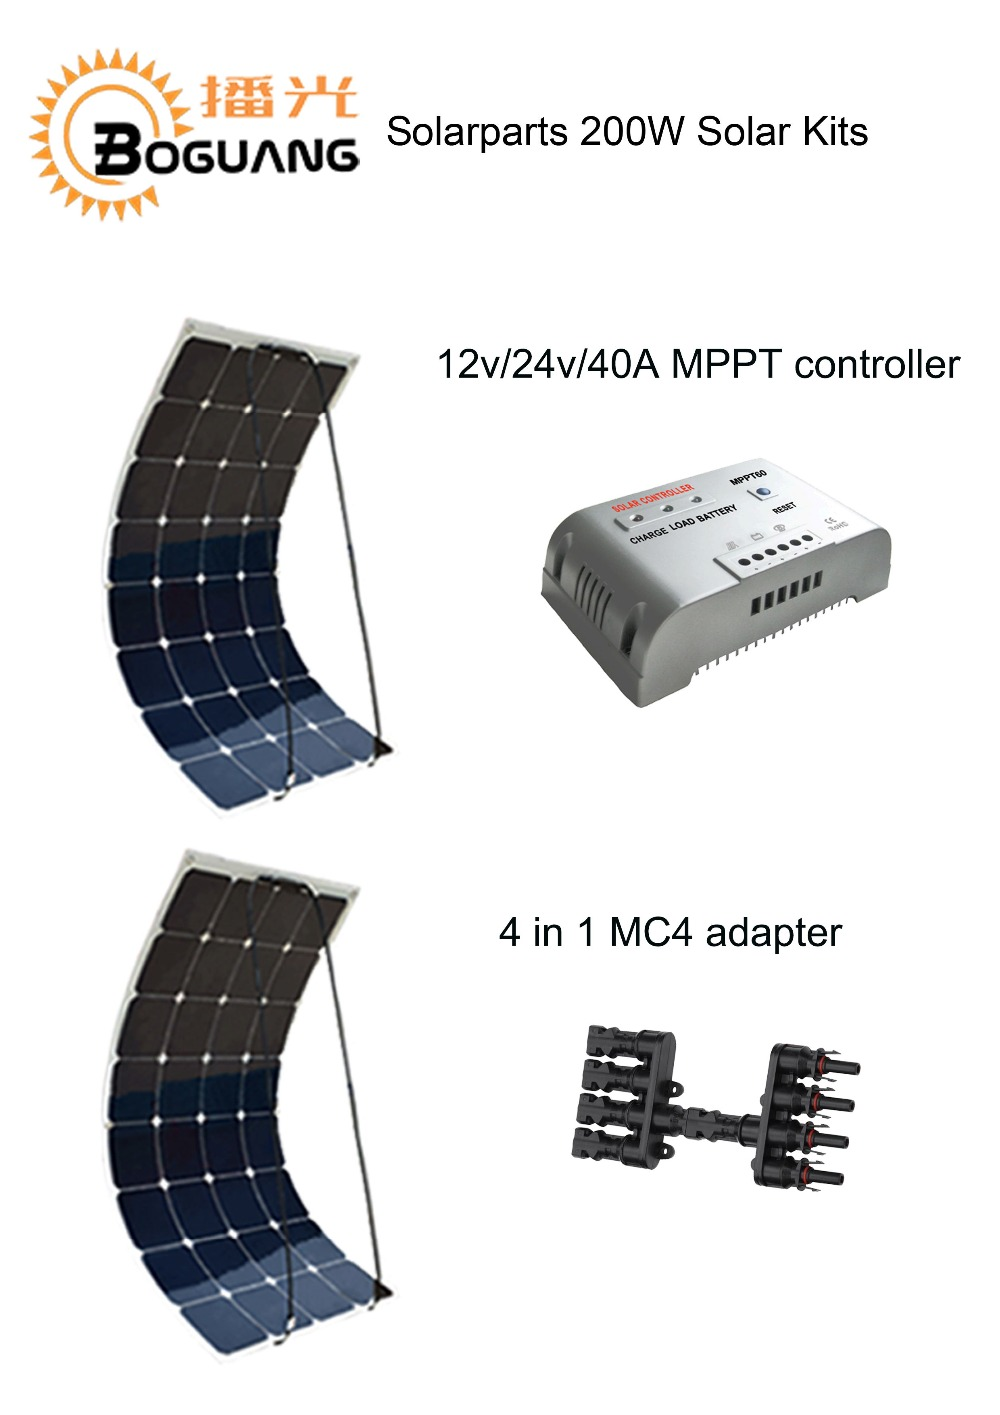 Boguang  200w solar panel solar systrm module 40A MPPT controller 4 in 1 MC4 connector for 12v battery car RV yacht 100w 12v solar panel module 20a cmg controller 1000w off grid for car traile solar generators